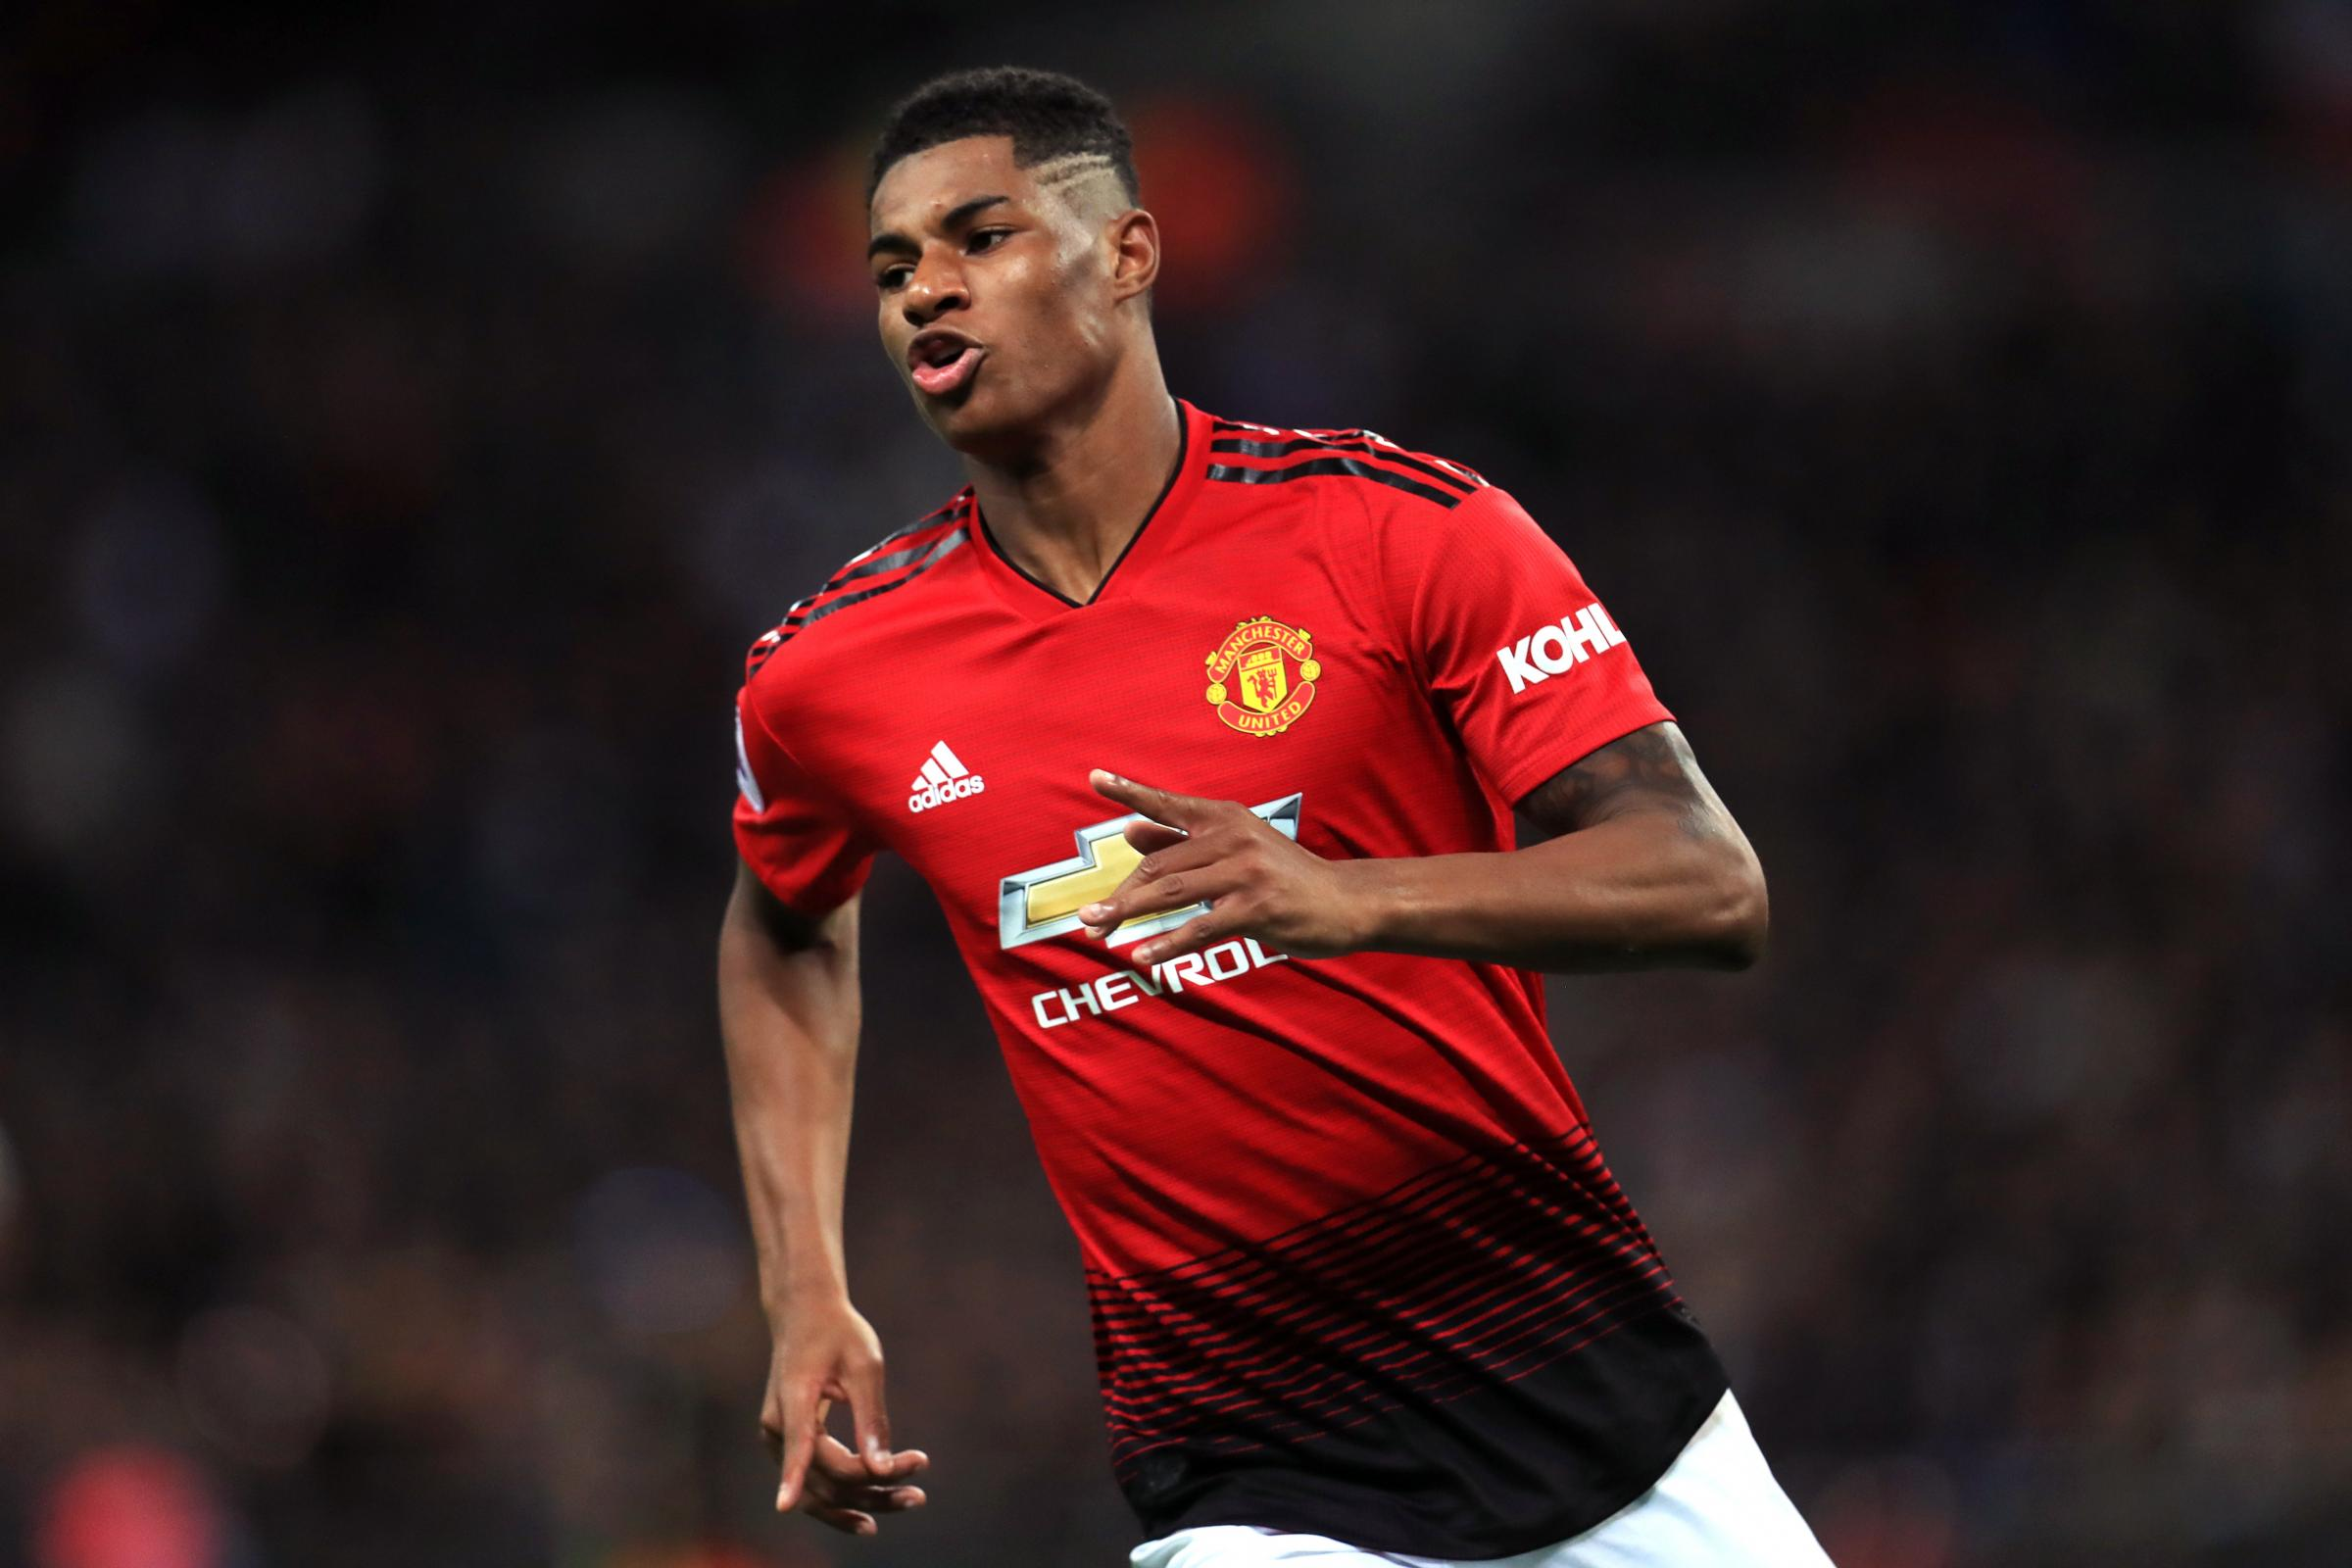 Marcus Rashford remains in favour with Manchester United